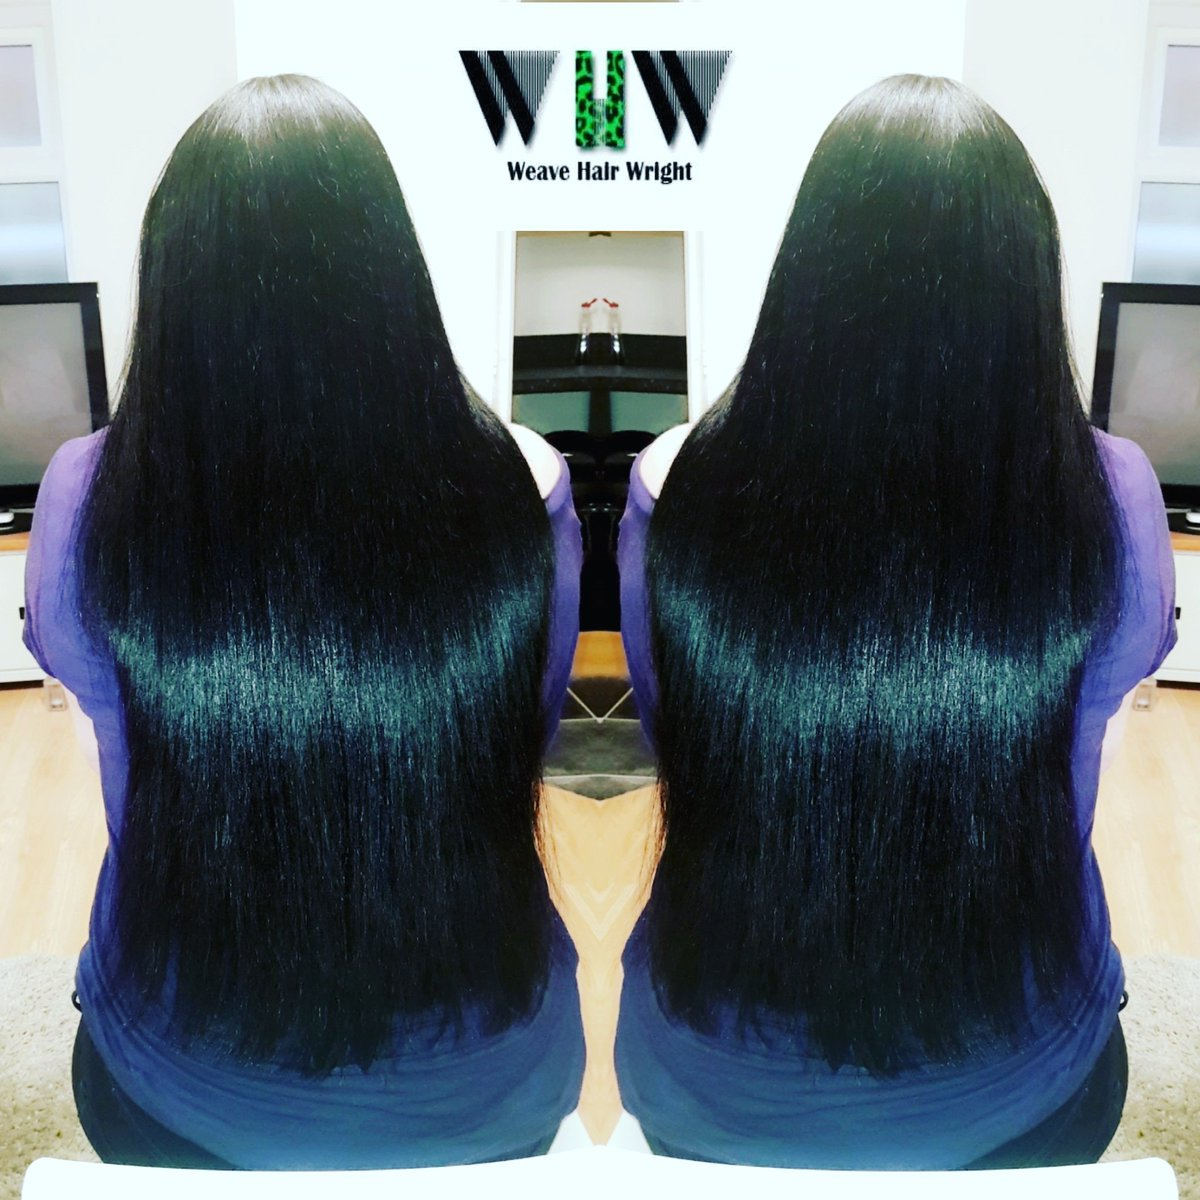 Weave Hair On Twitter Weave Hair Wright Fitted 4 Rows 22 Beauty